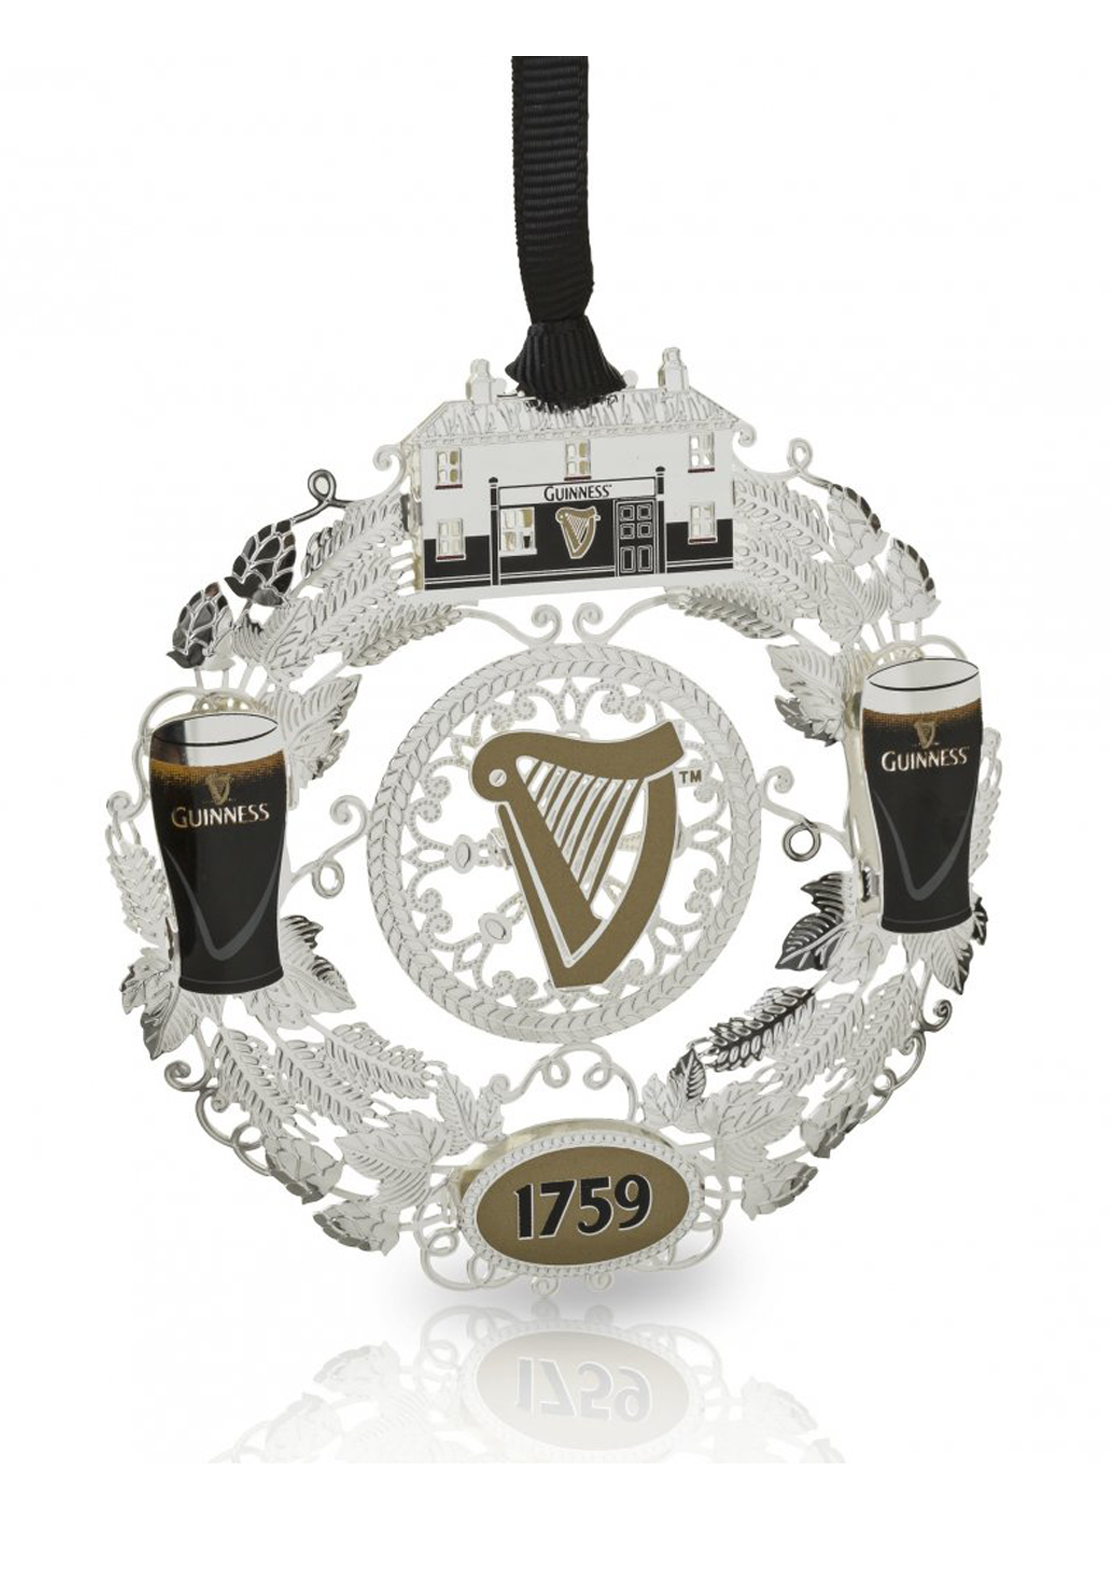 Guinness Newbridge Silverware Wreath Decoration